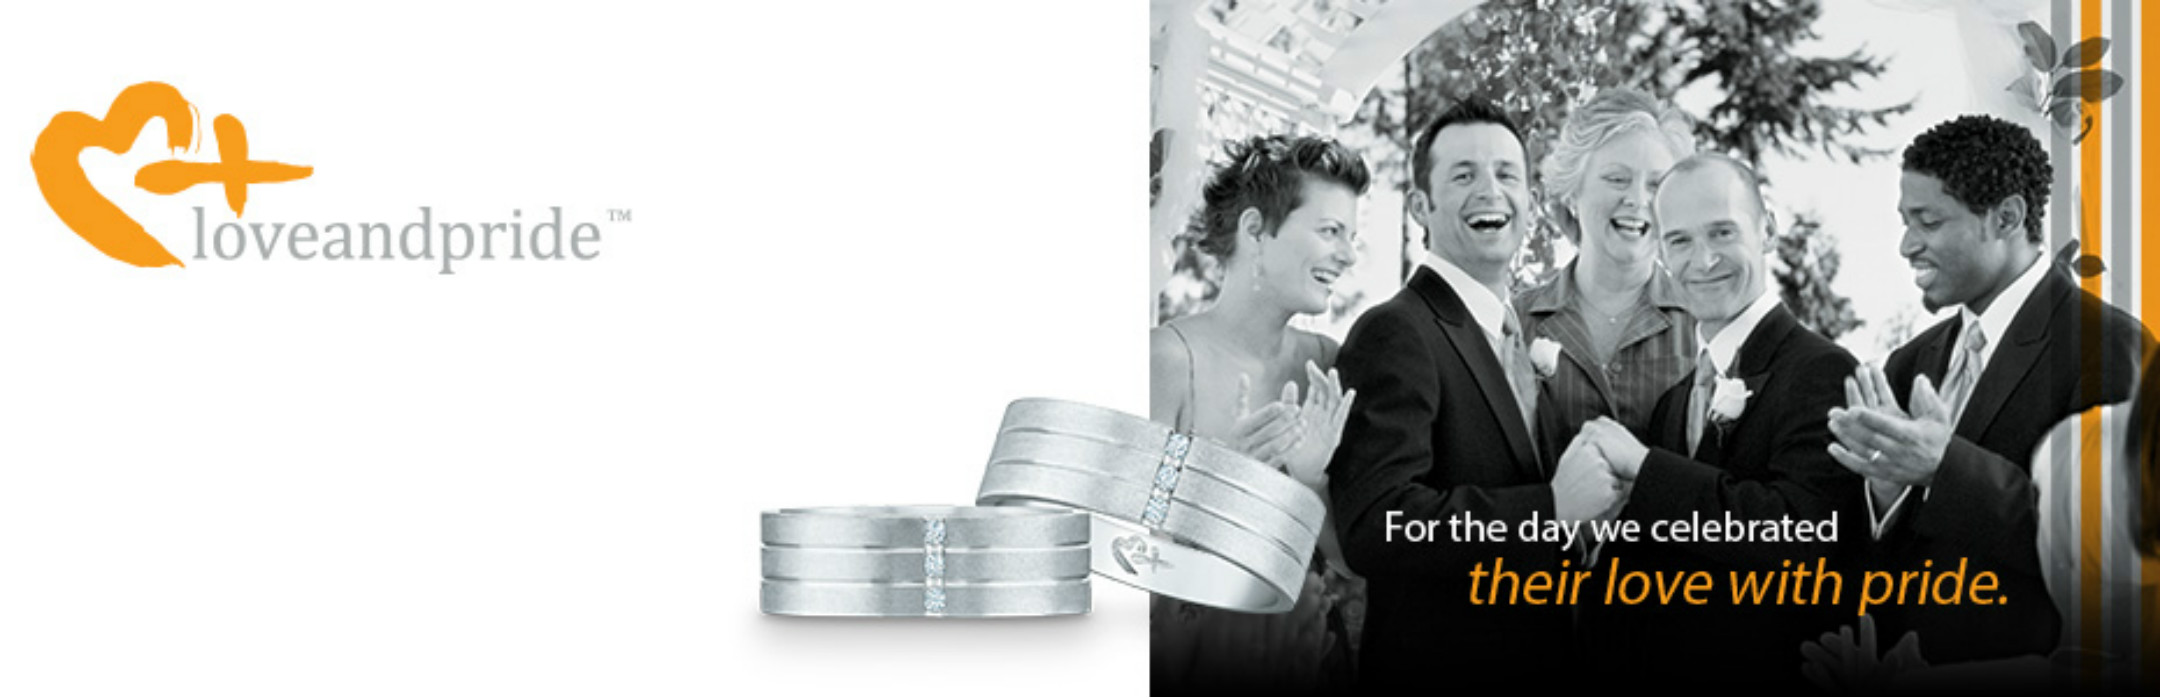 Wedding rings made specifically for same-sex couples are now available at a major US jewelry chain